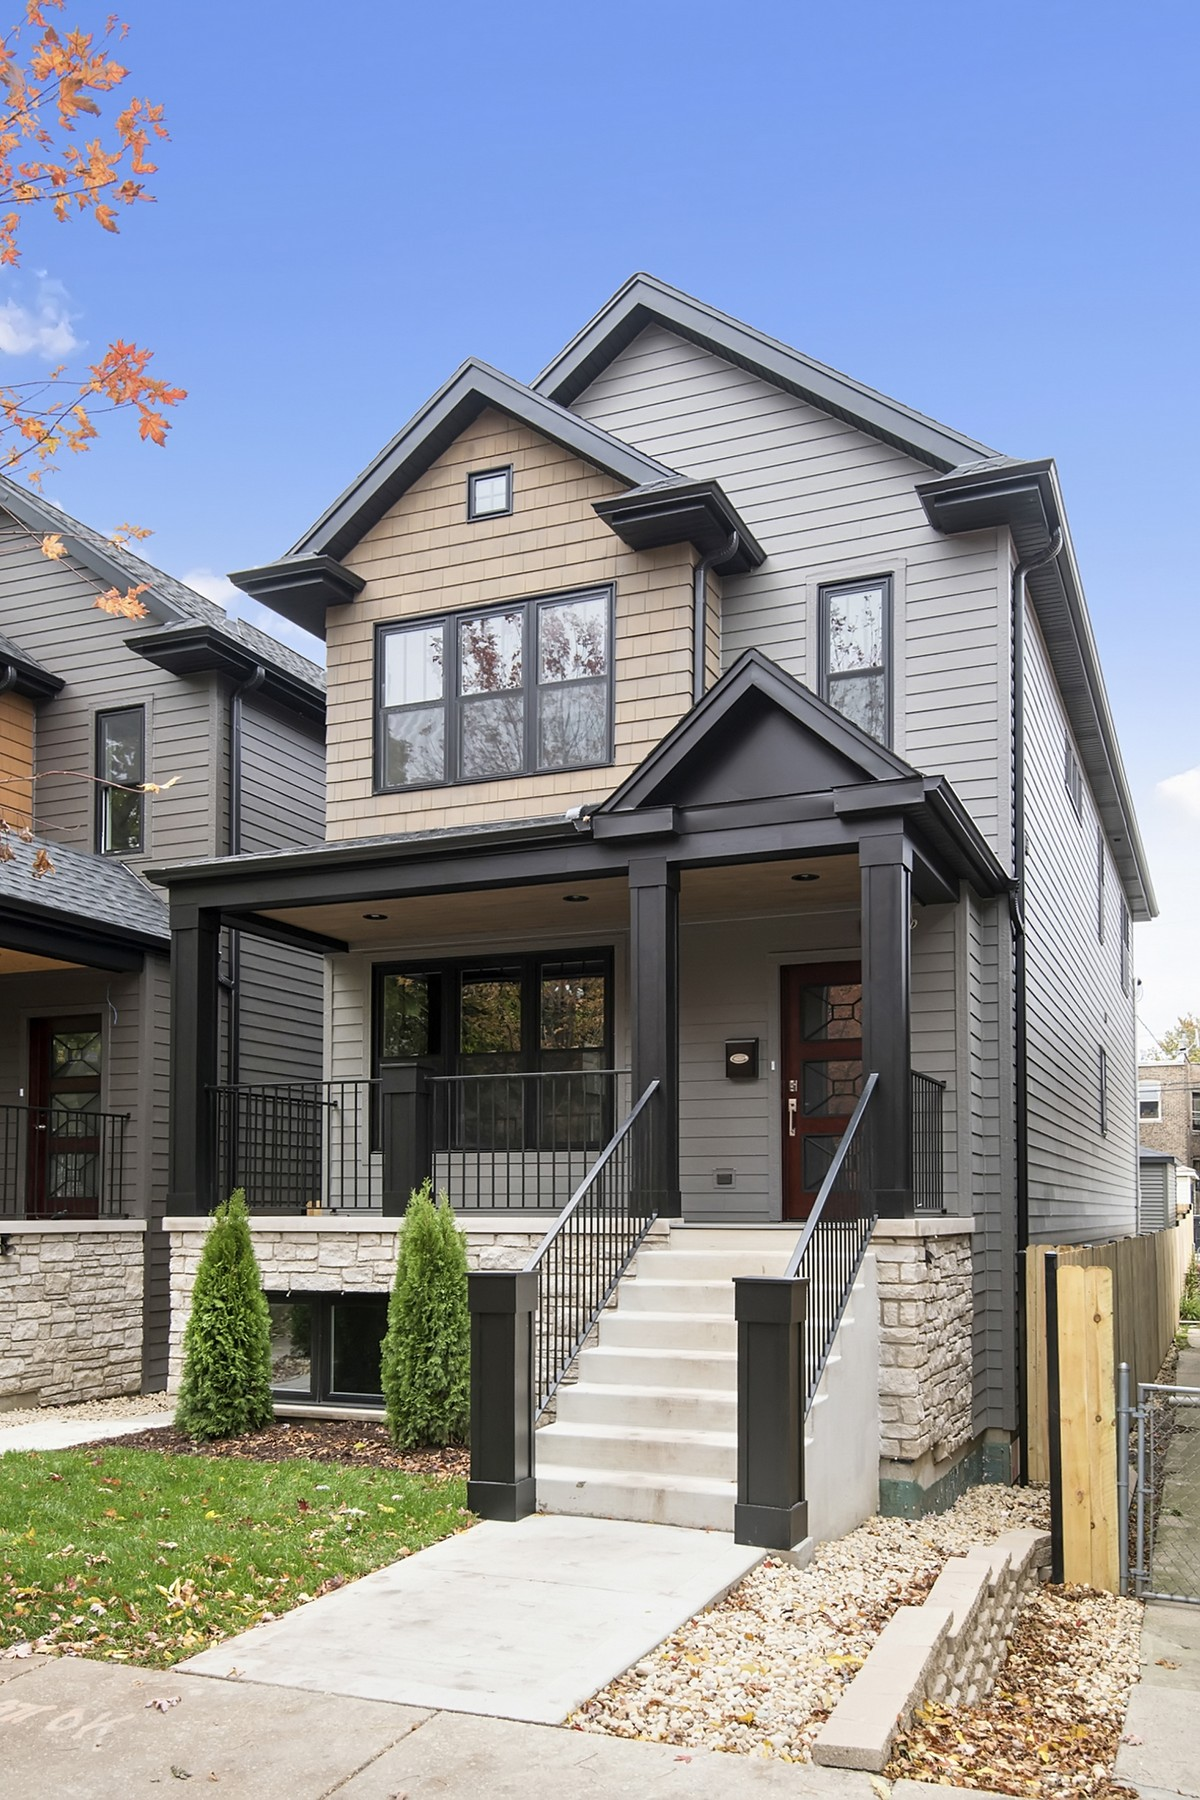 Single Family Home for Sale at Expert Craftmanship & Luxury Finishes 2709 N Albany Avenue Logan Square, Chicago, Illinois 60641 United States